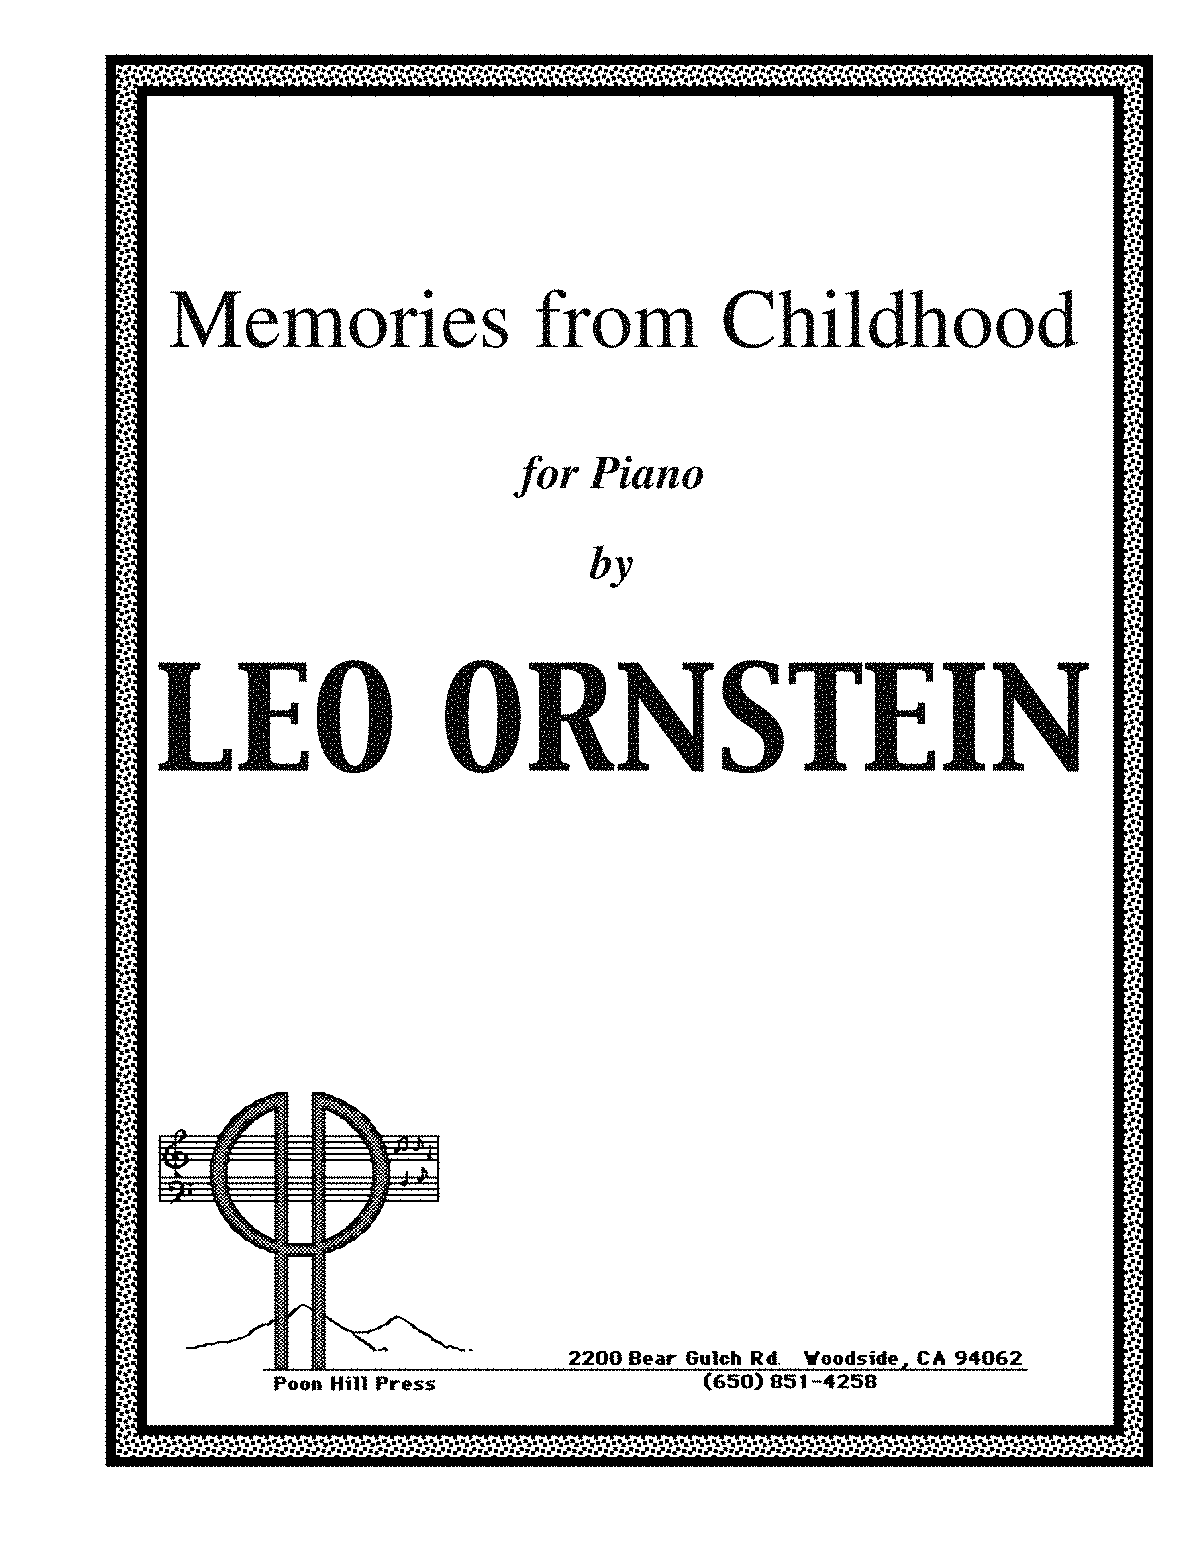 S066 - Memries frm Childhd.pdf